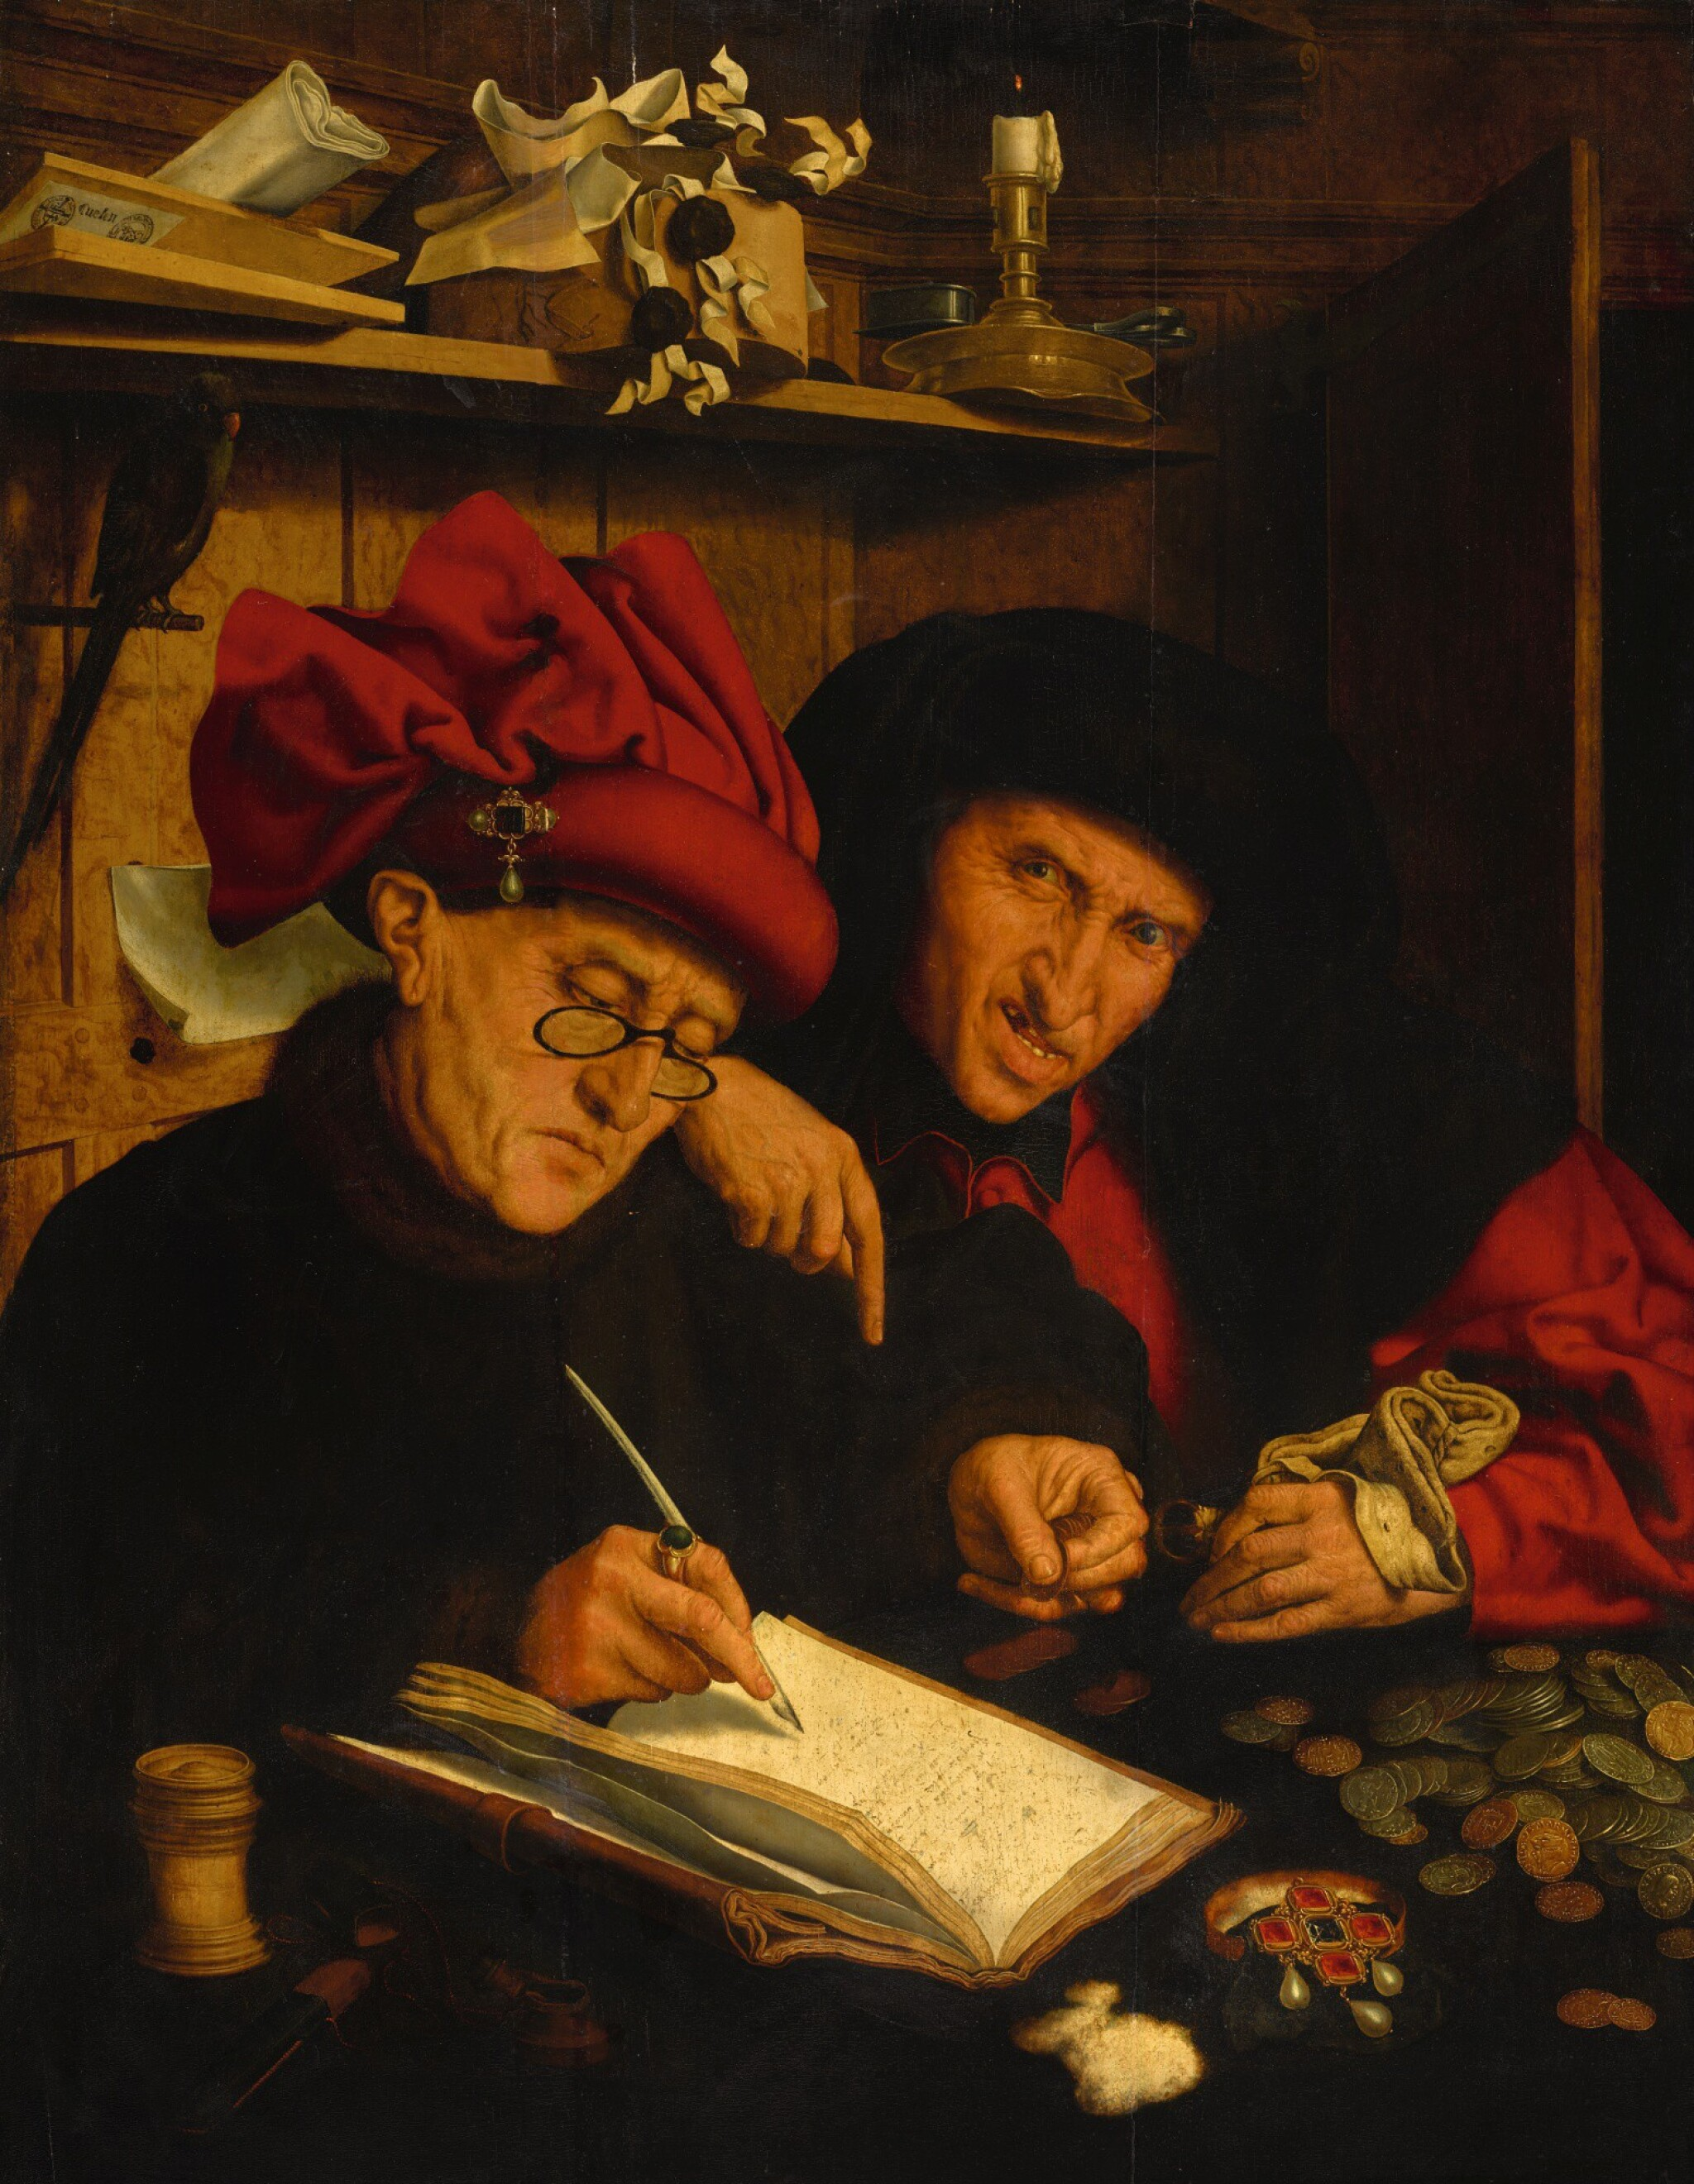 View full screen - View 1 of Lot 2. FOLLOWER OF MARINUS VAN REYMERSWAELE   The Tax Collectors or 'The Misers'   馬里納斯・凡・雷梅爾思維勒之追隨者     《稅吏》或《守財奴》.